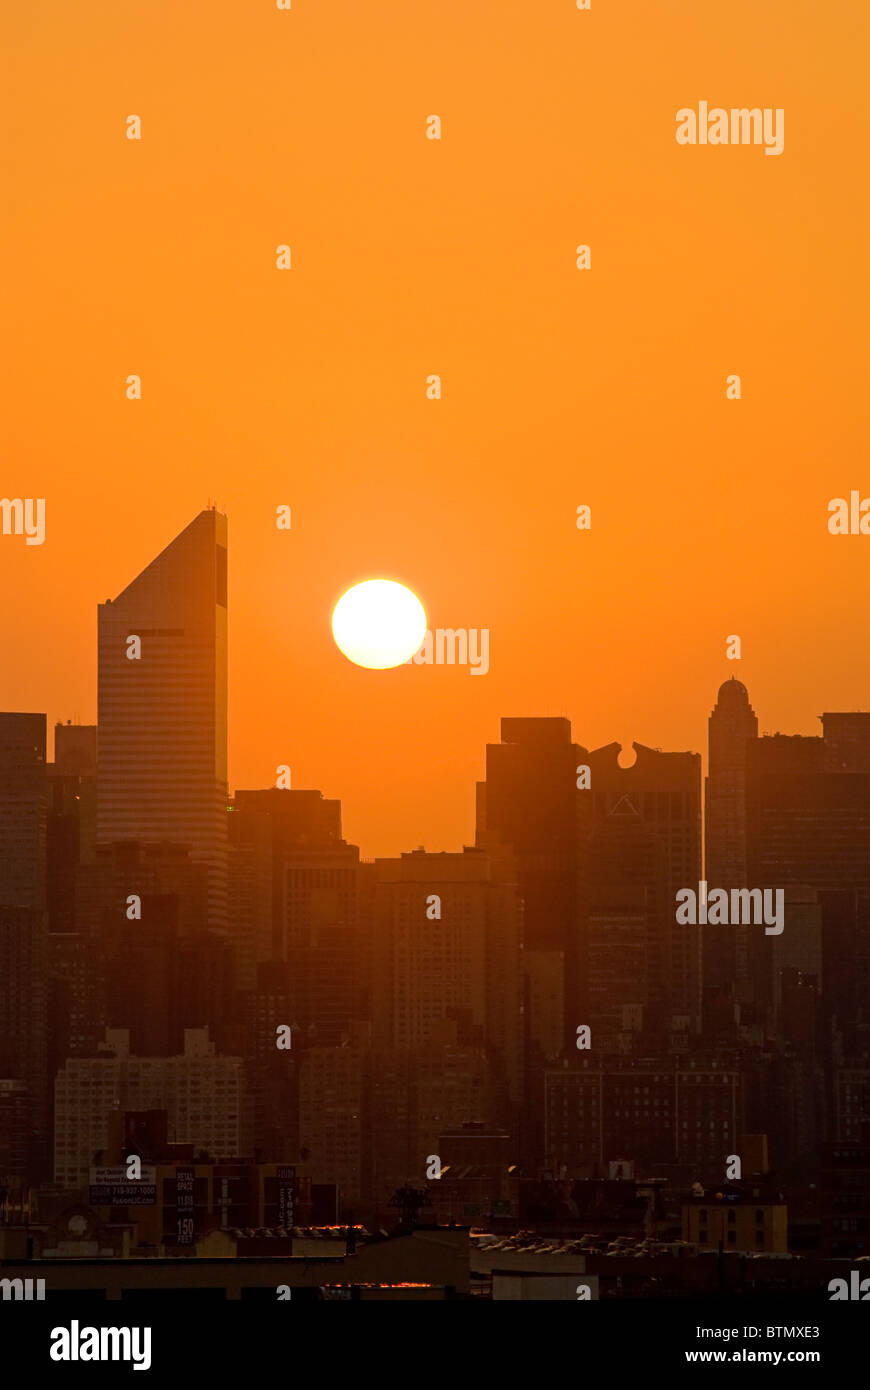 Skyline de Manhattan avec la Citicorp Center, au coucher du soleil, la ville de New York. Photo Stock